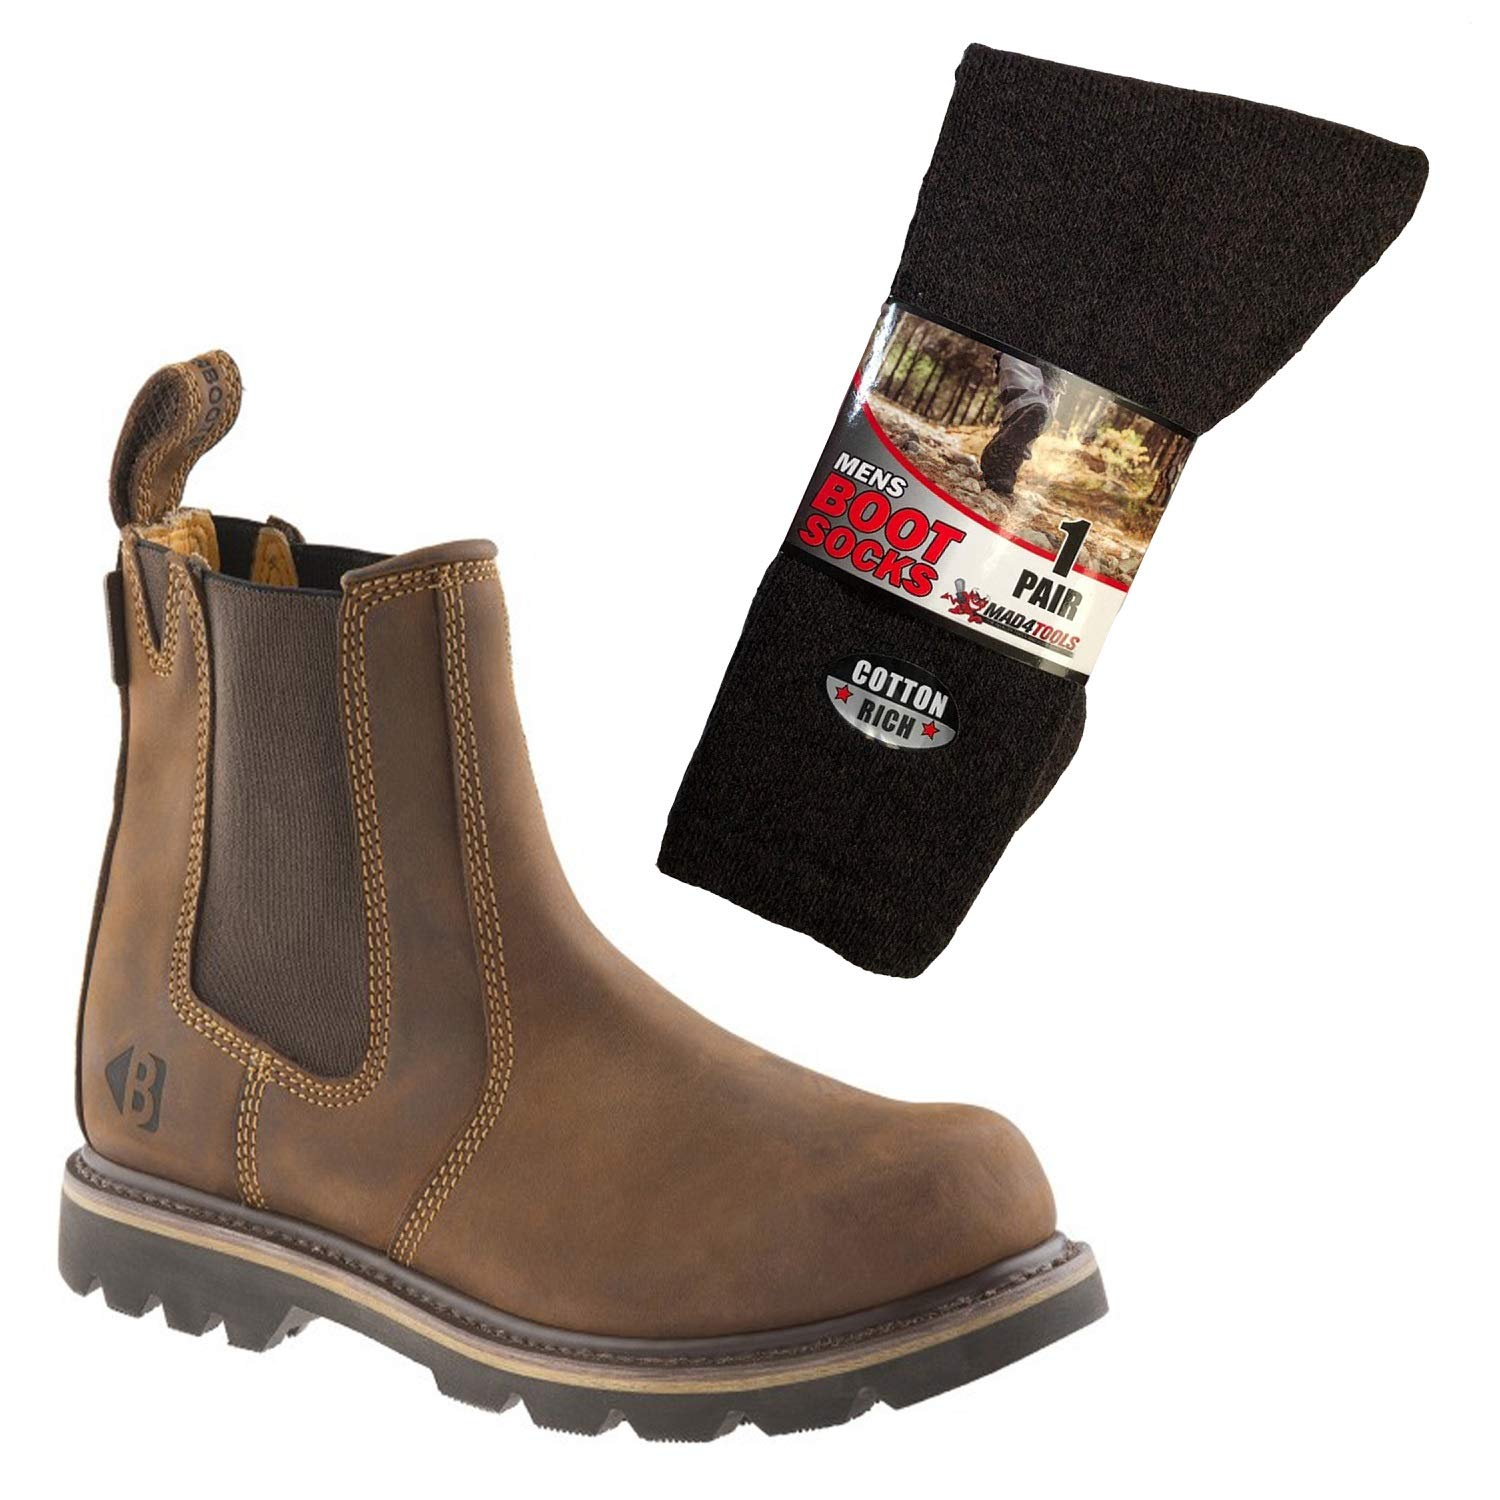 ce1148bf447 Buckler B1300 Buckflex Non-Safety Dealer Boots & mad4tools Boot ...